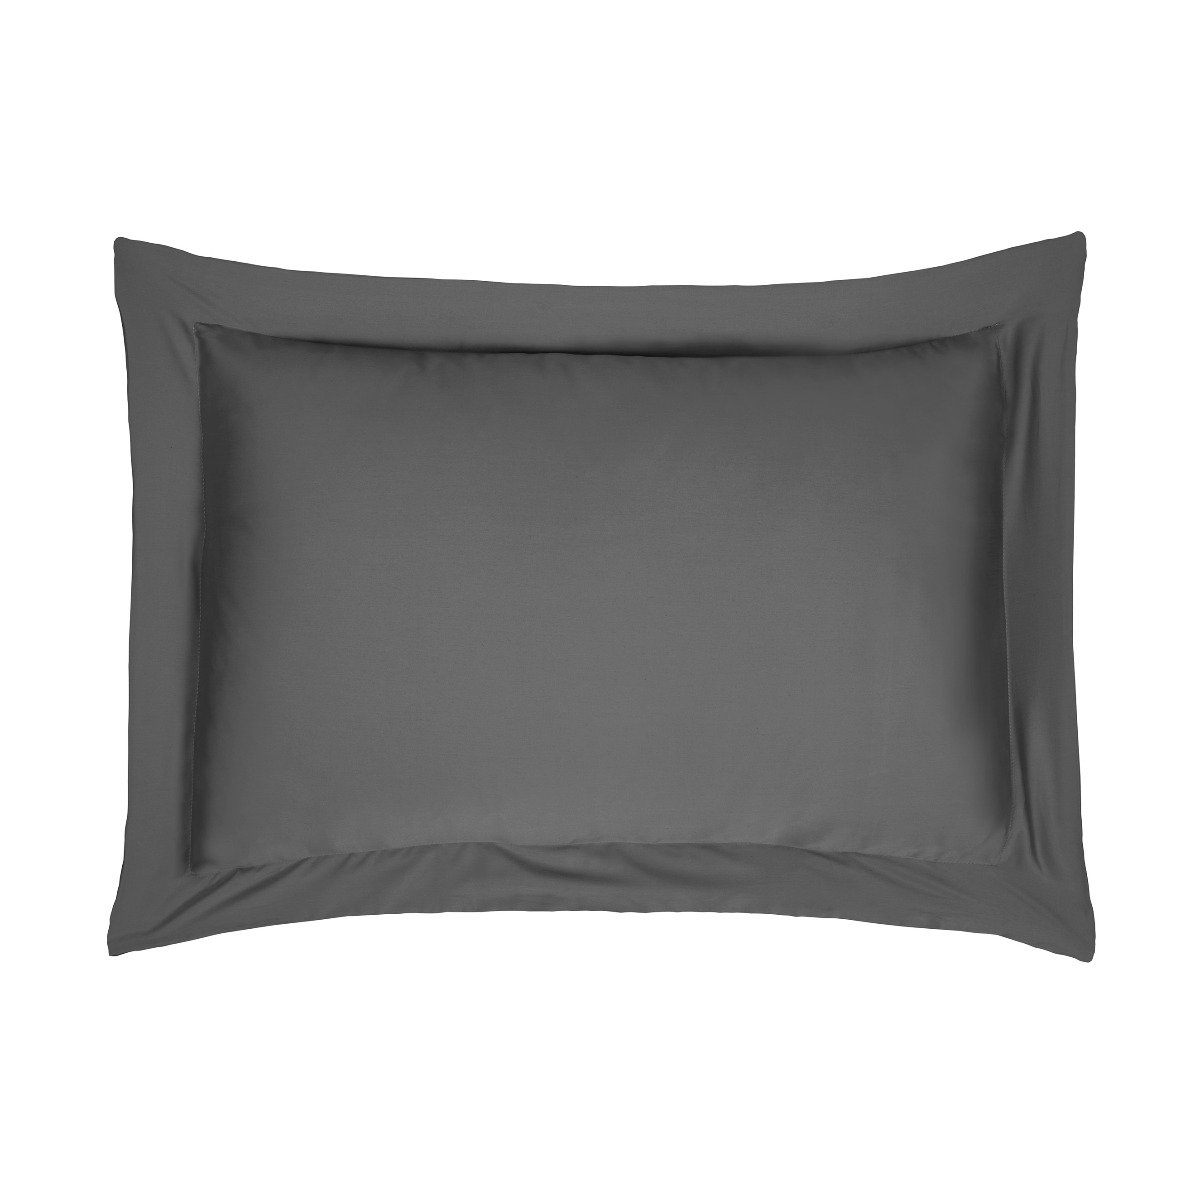 Sleepdown Pillowcase 100% Cotton Sateen Pack of Two Oxford Pillow Cover Set Anti-Allergy 300 Thread Count Luxury Bed Linen - Charcoal - 50 x 75cm